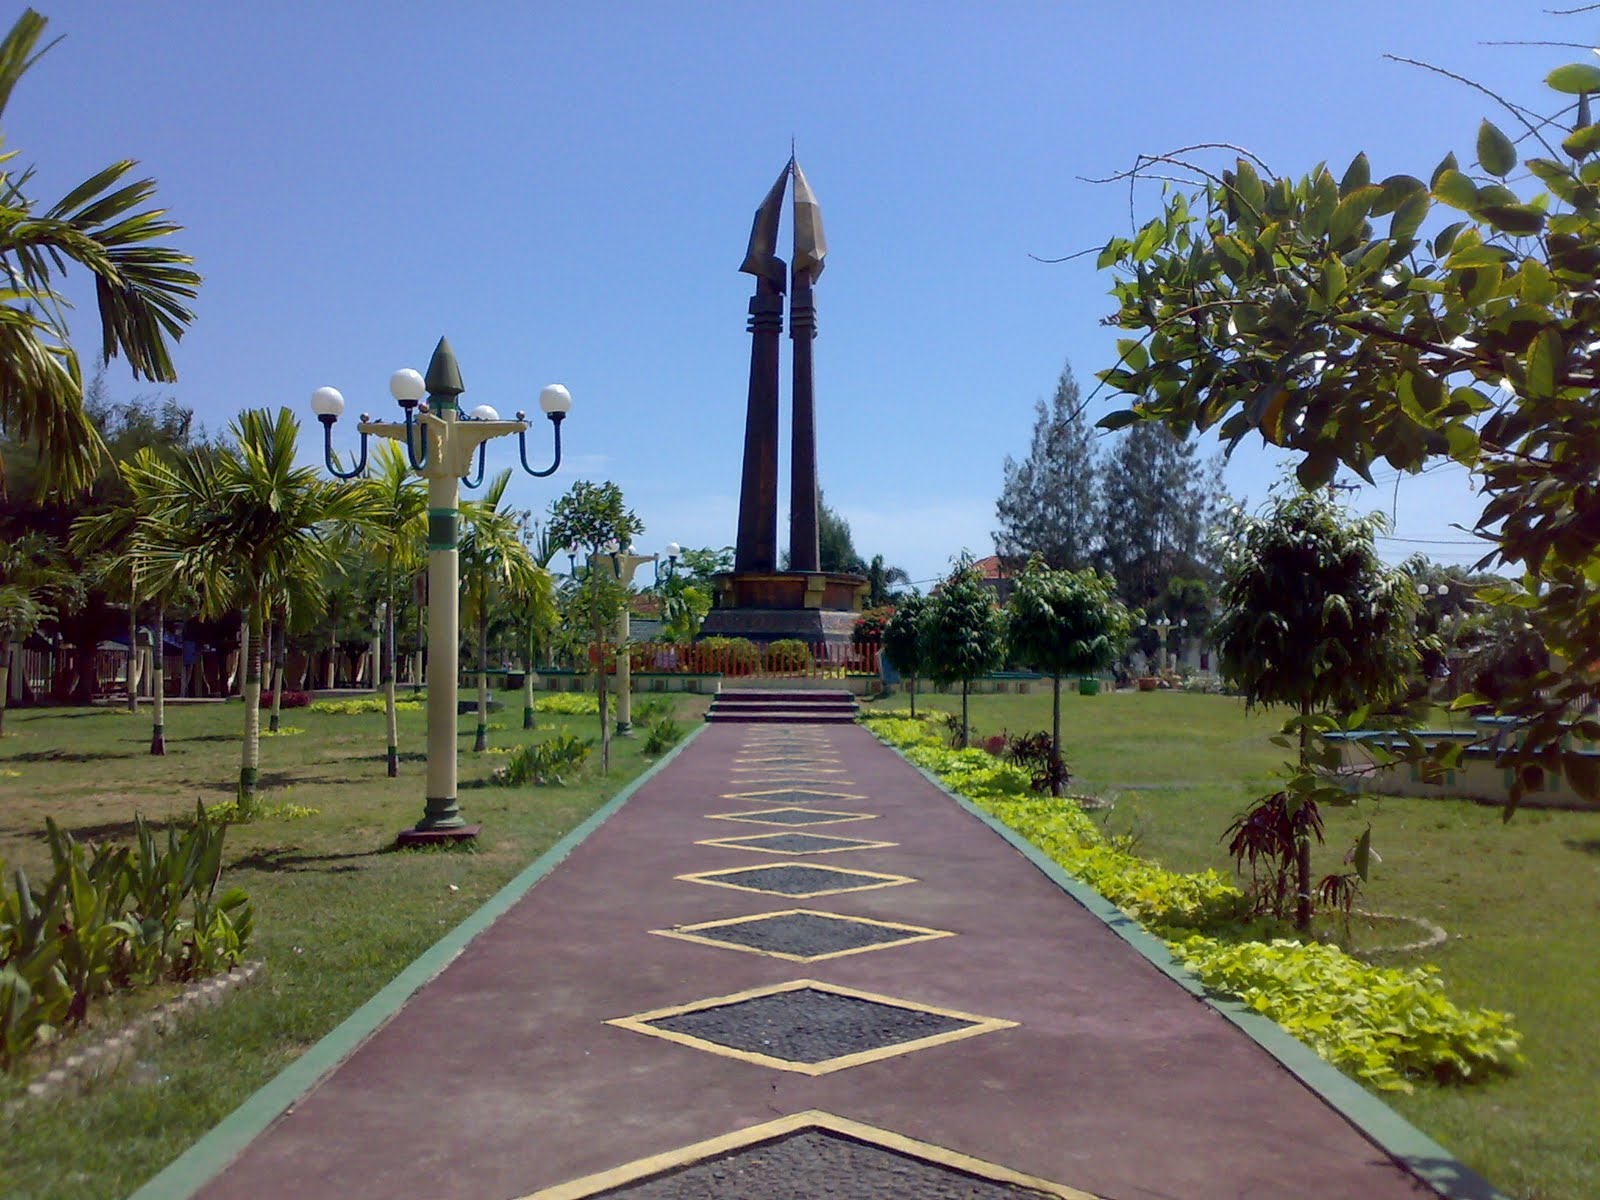 Monumen Trunojoyo sampang